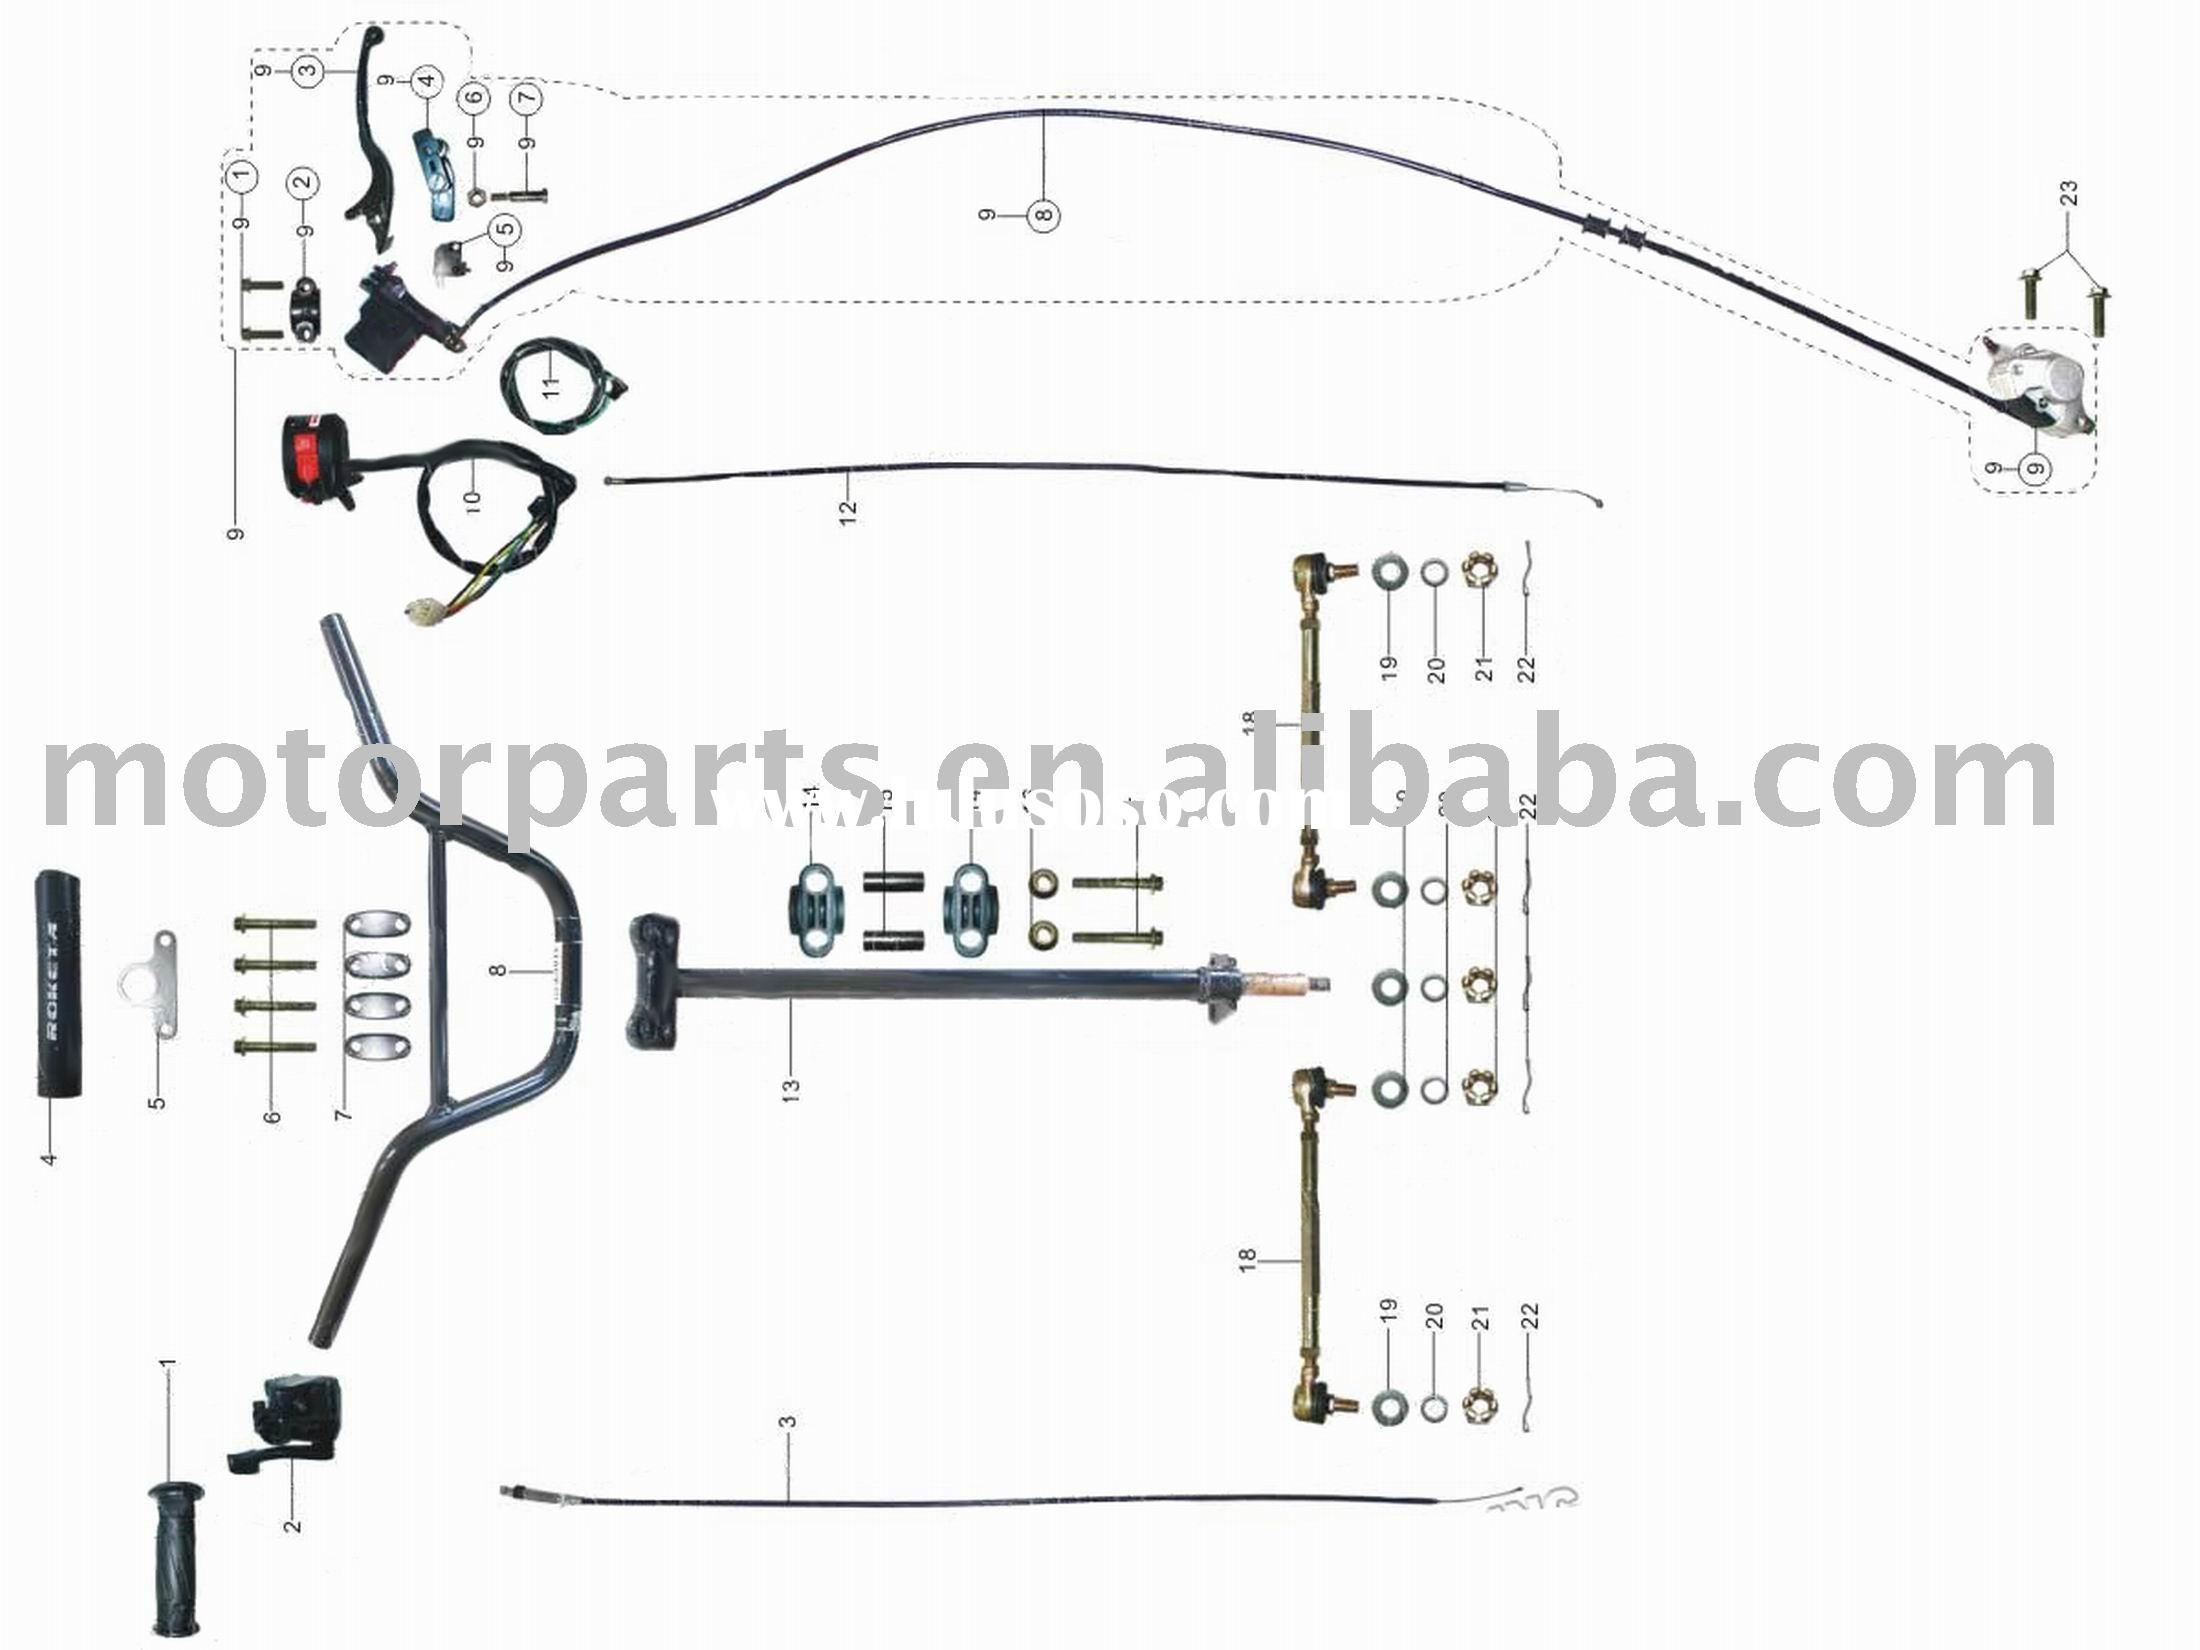 9n0g93 in addition Chinese Cdi Wiring Diagram For together with Rascal 245 Mobility Scooter Wiring Diagram in addition Showthread also Taotao Ata 110h1 Wiring Diagram. on electric scooter wiring schematic